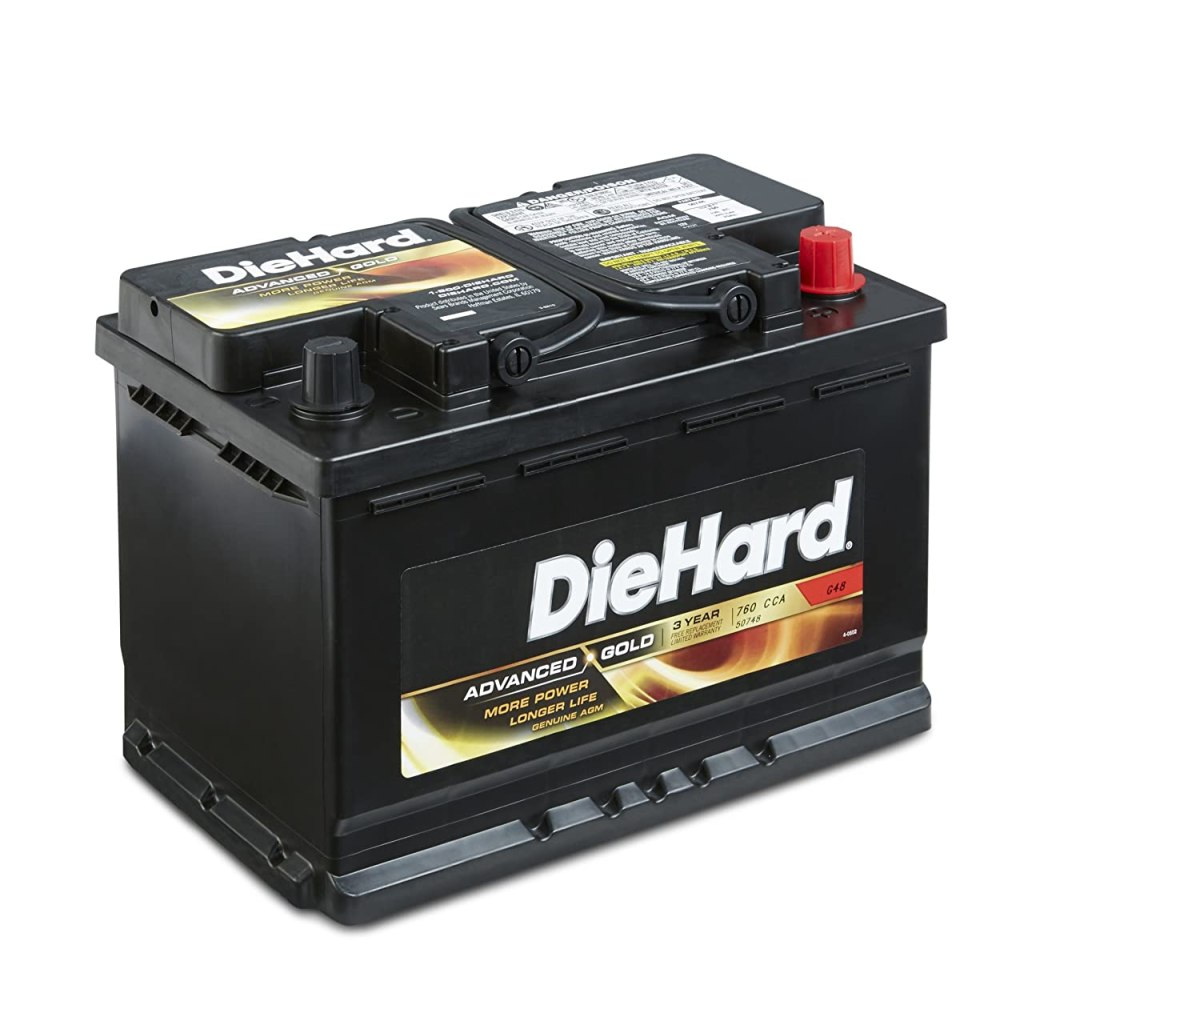 Best Car Batteries DieHard 50748 Group Advanced Gold AGM Battery GP 48